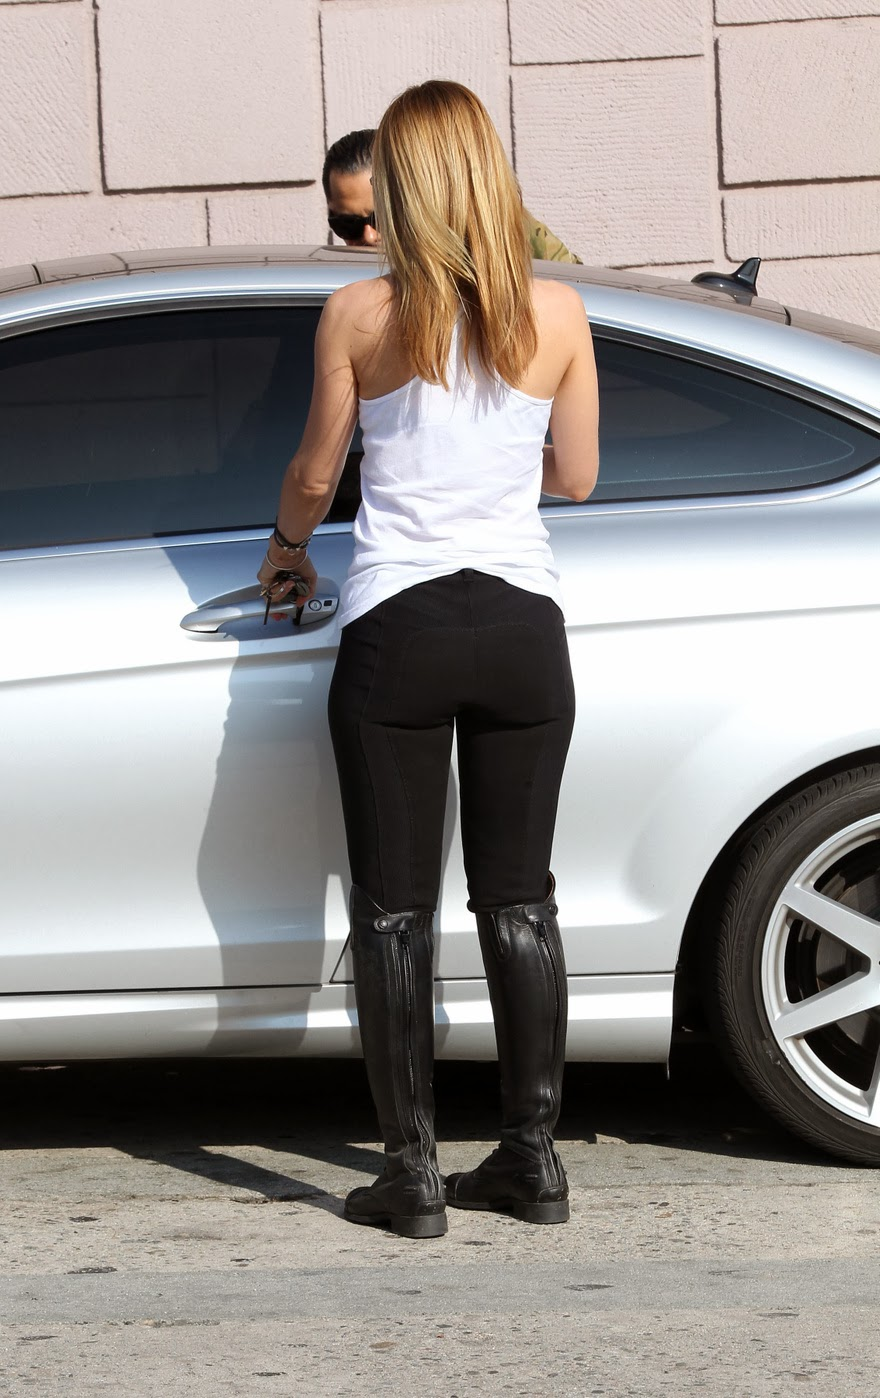 Mena Suvari's Booty Is Back